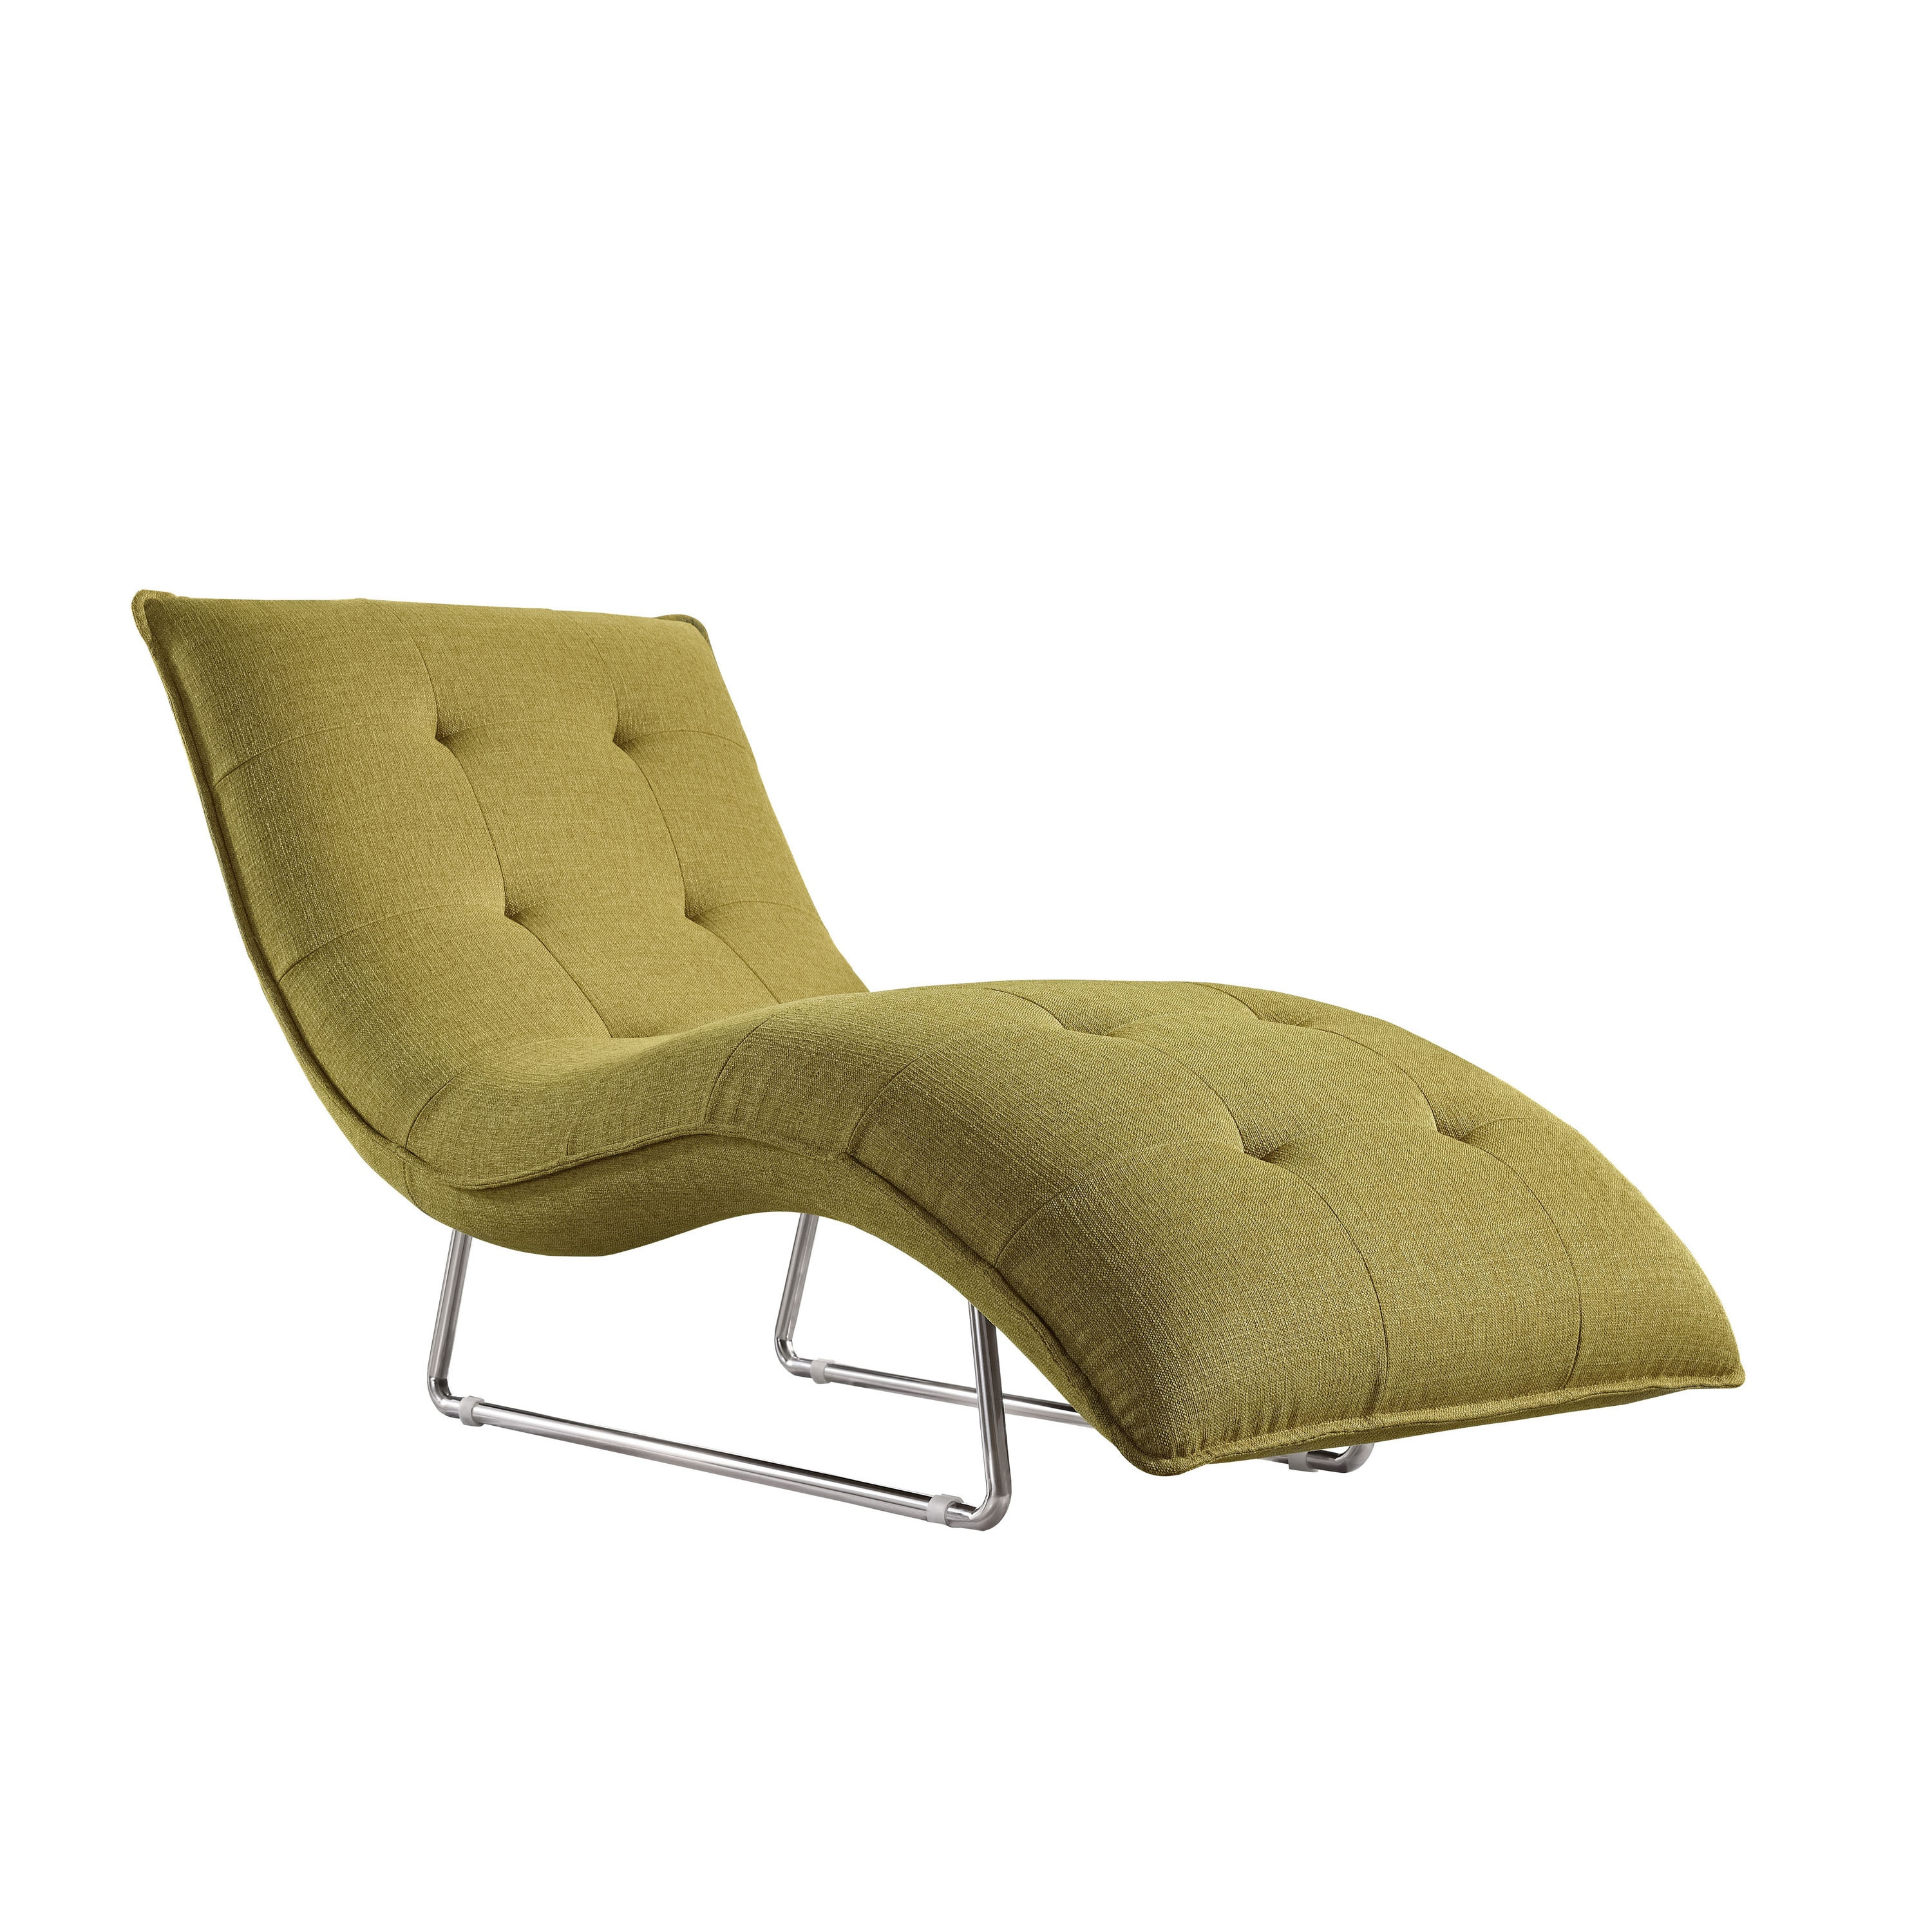 Chaise Lounge Chairs 3000 x 3000